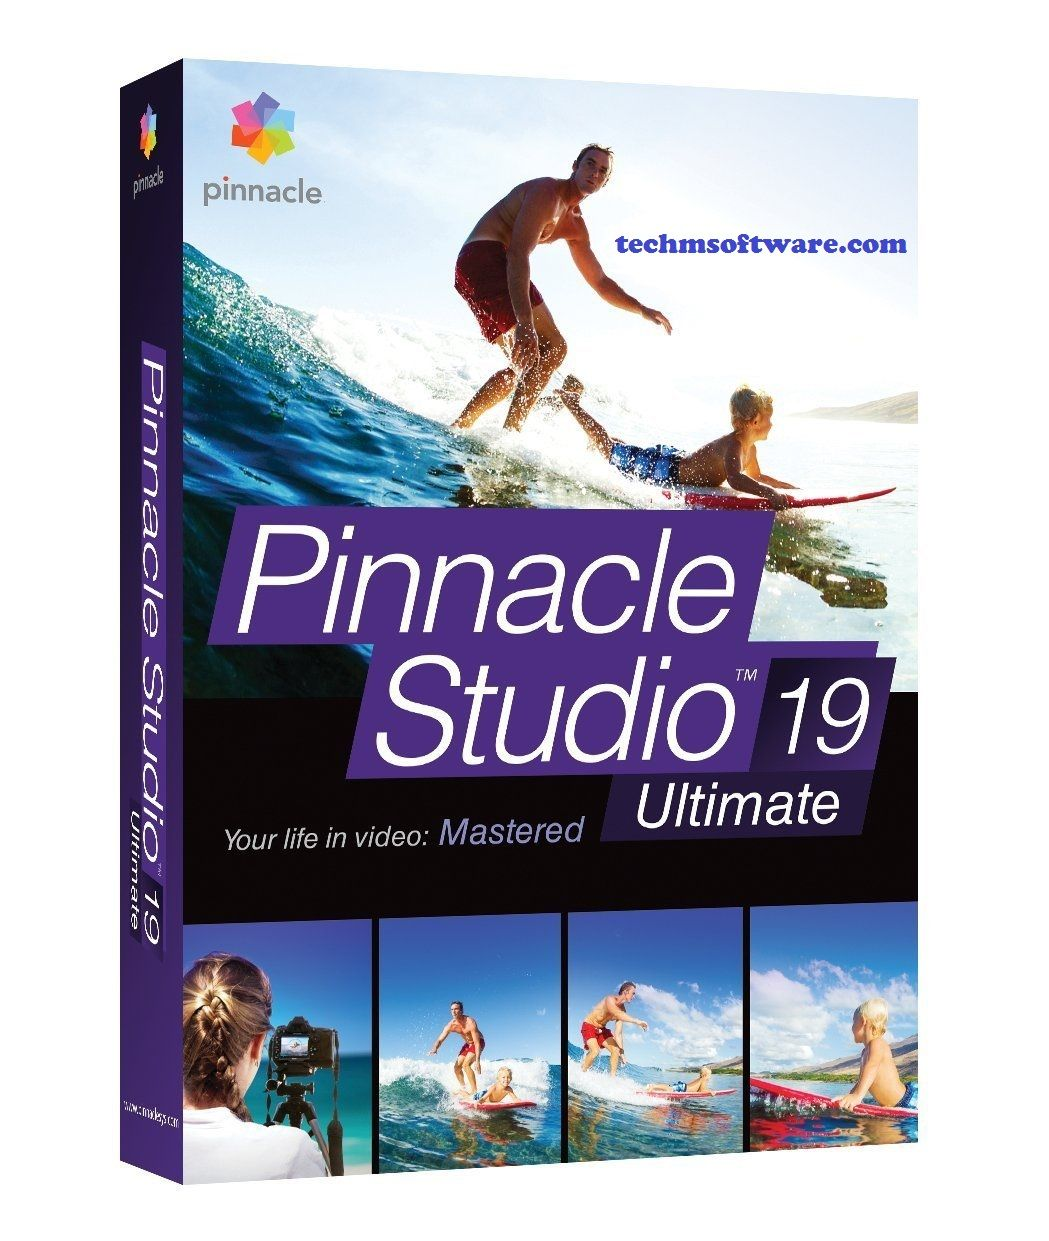 Download manycam enterprise 5 0 5 2 multilingual - Pinnacle Studio Ultimate 19 Crack With Serial Key Full Version Free Download From Here And You